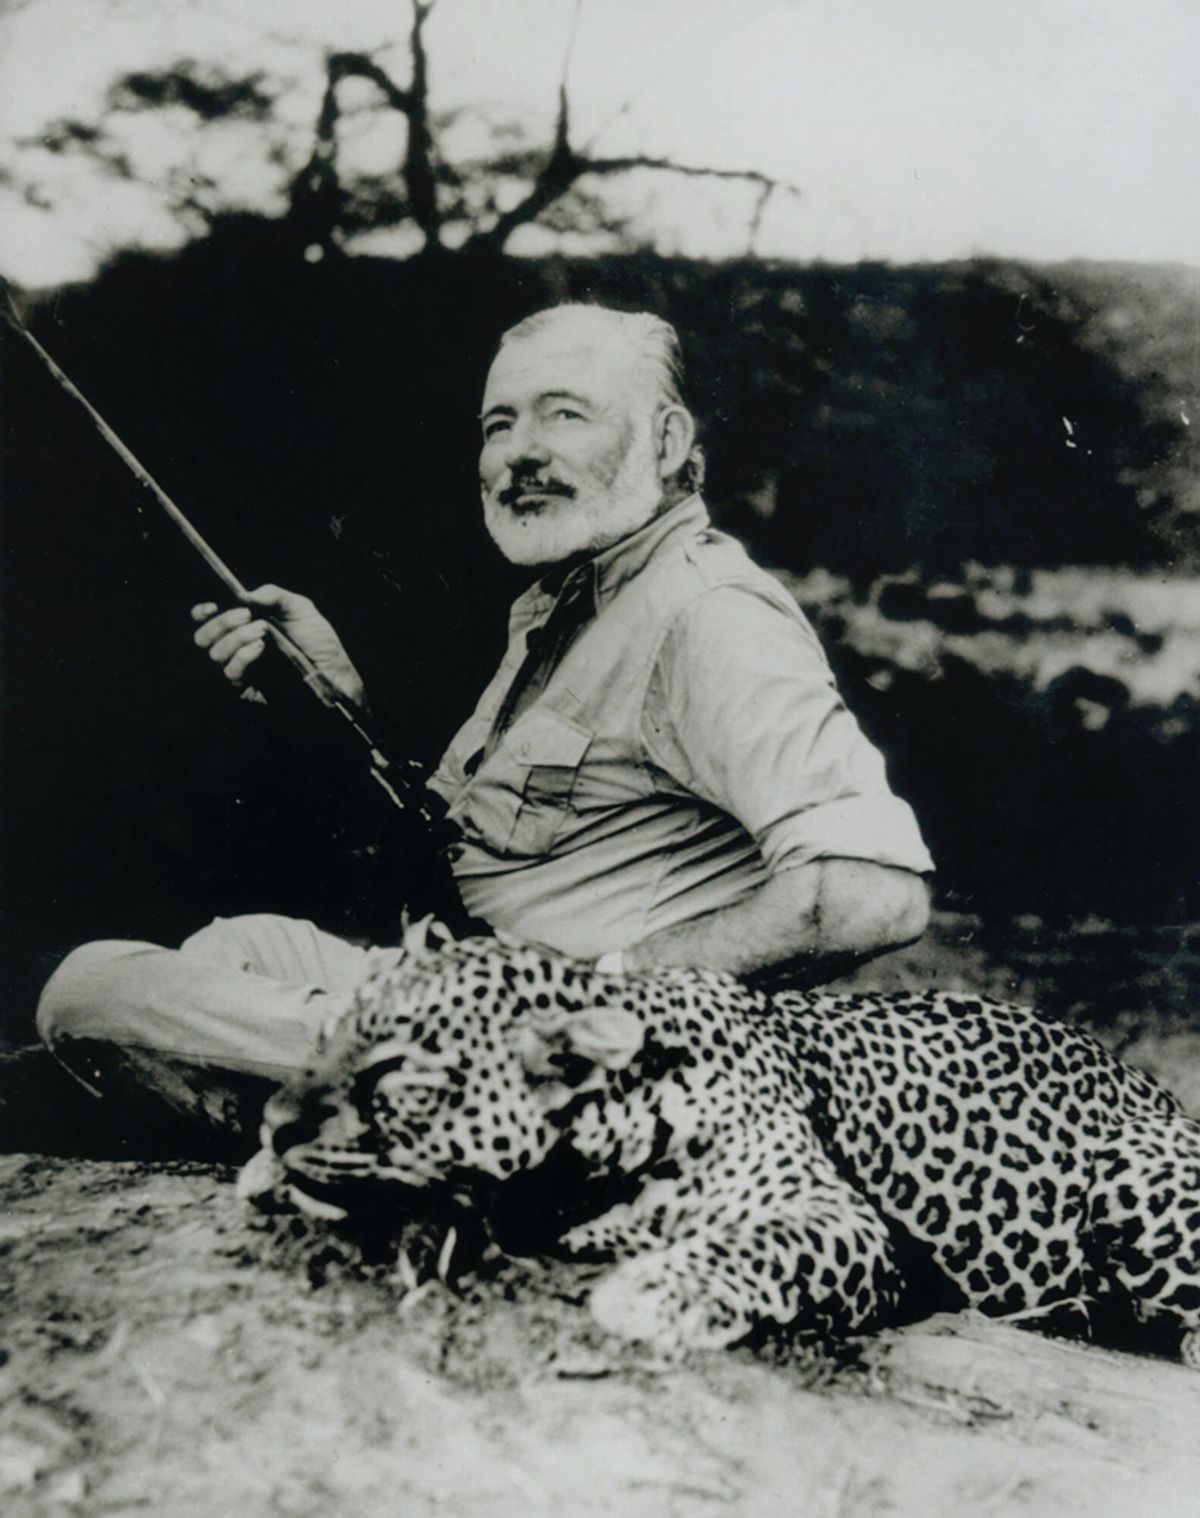 Ernest Hemingway poses with a dead leopard in 1953, part of an exhibit of Hemingway photos to celebrate his 100th birthday on display at Washington's National Portrait Gallery through Nov. 7, 1999. Hemingway, who killed himself three weeks before his 61st birthday, would have been 100 on July 21. (AP Photo/National Portrait Gallery, Earl Theisen)  (Earl Theisen)